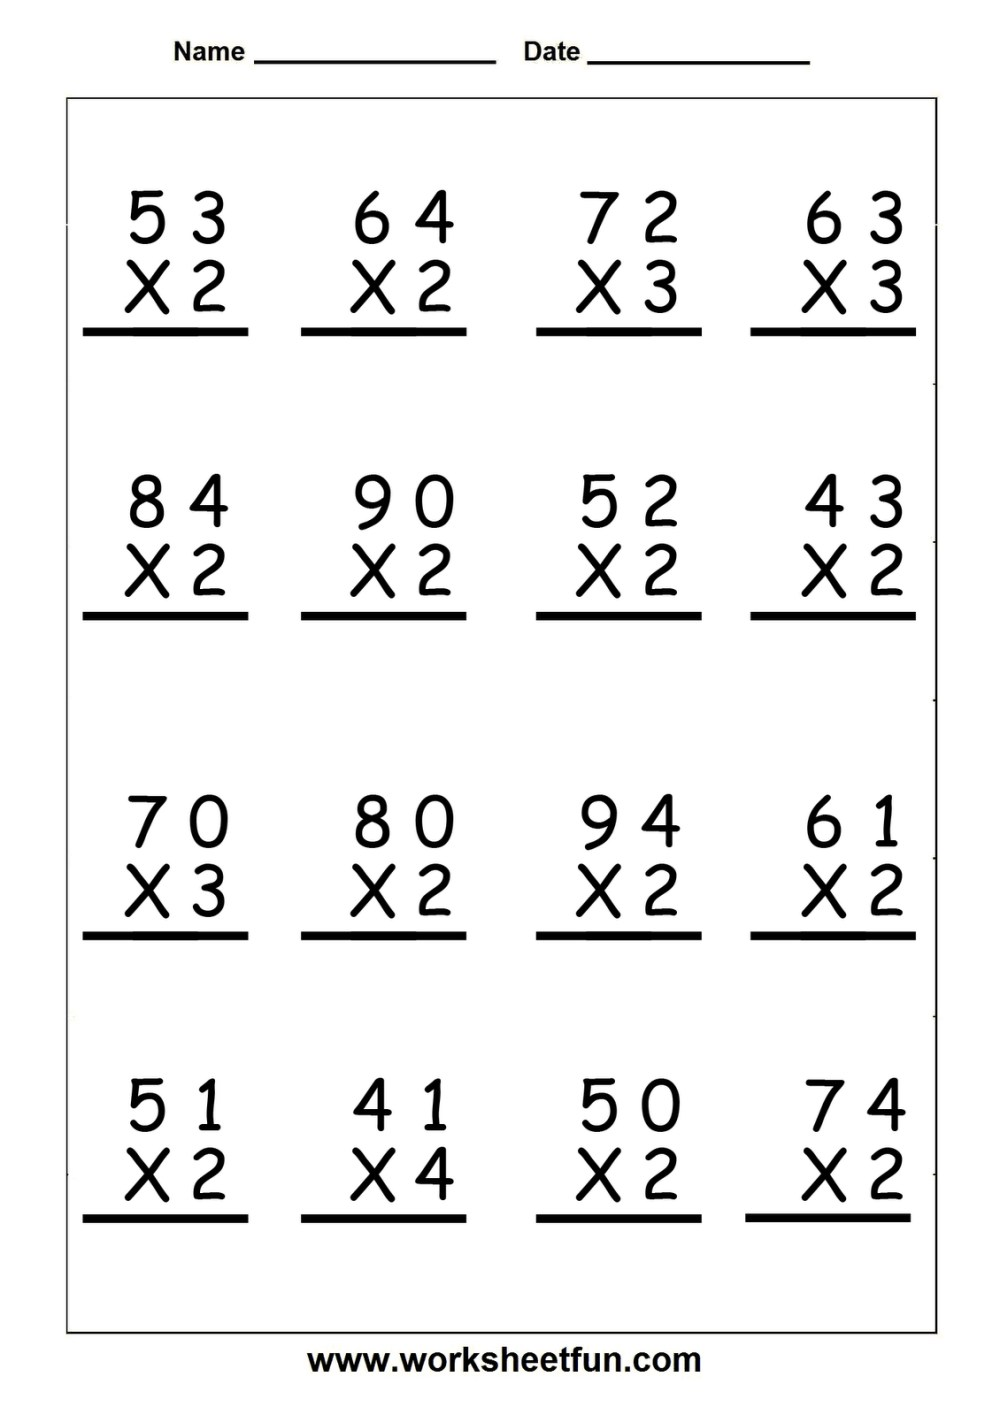 medium resolution of 5 Minute Multiplication Worksheets   Printable Worksheets and Activities  for Teachers